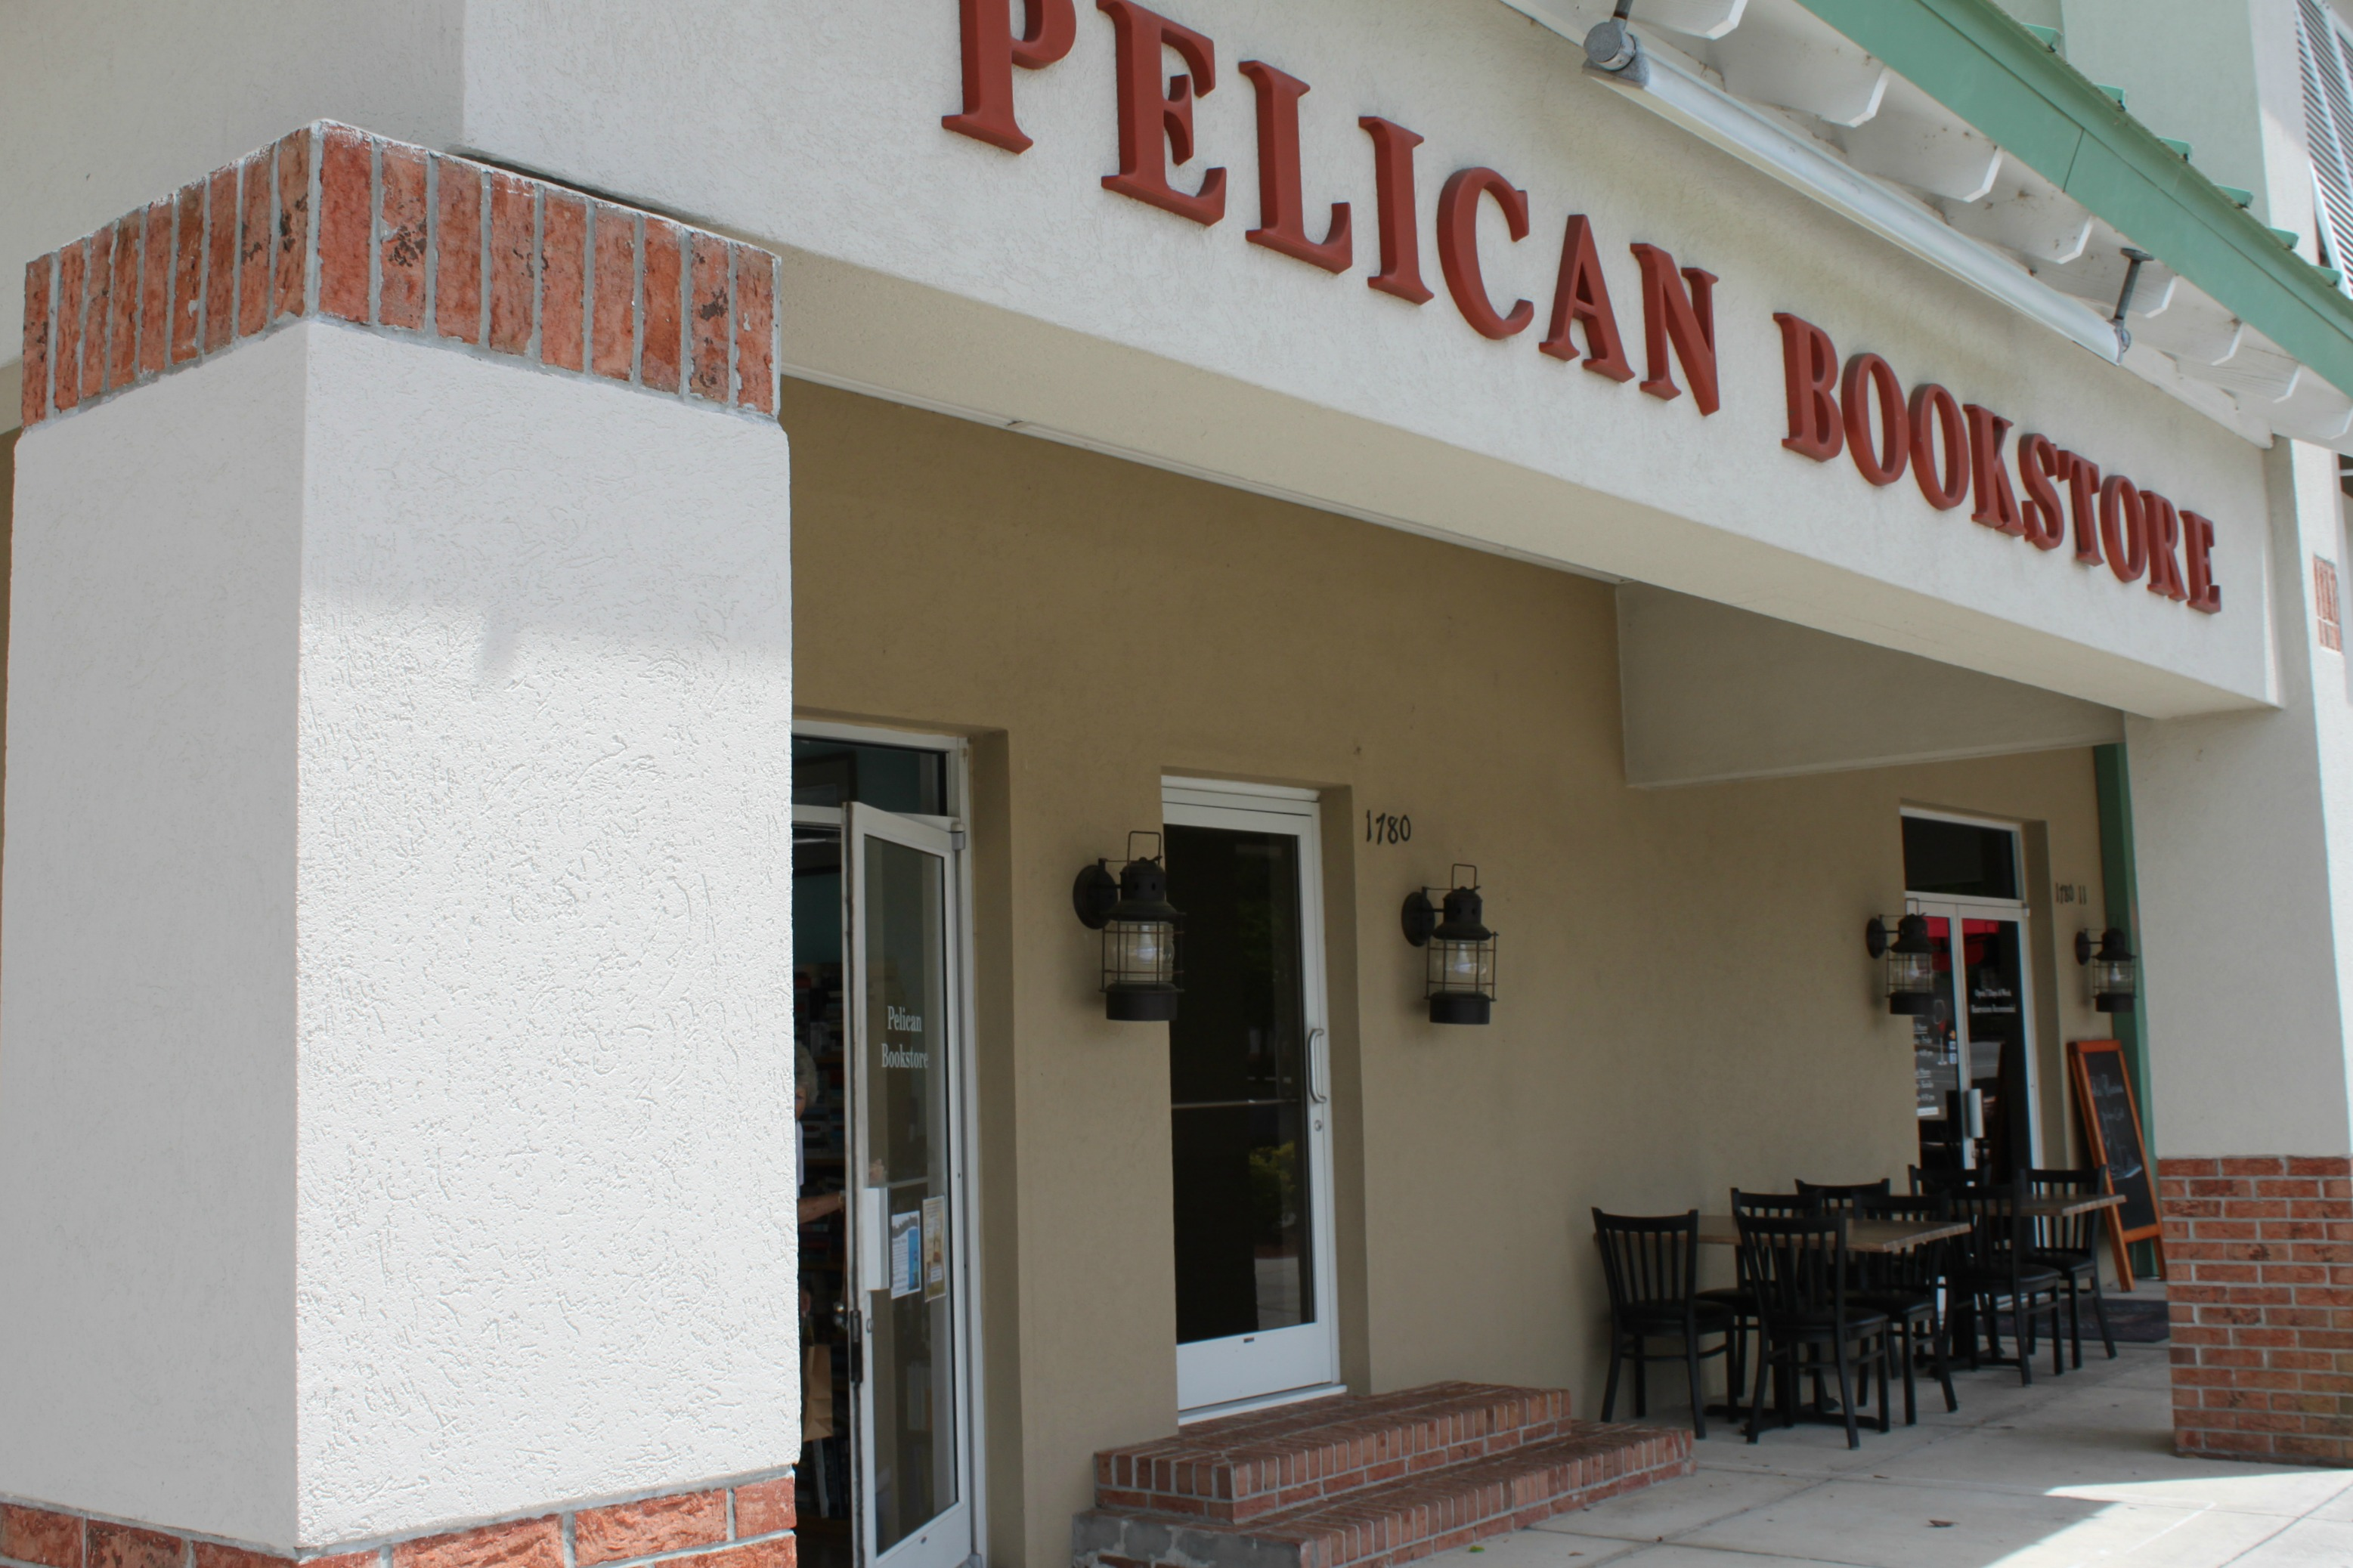 Pelicans Bookstore Sunset Beach